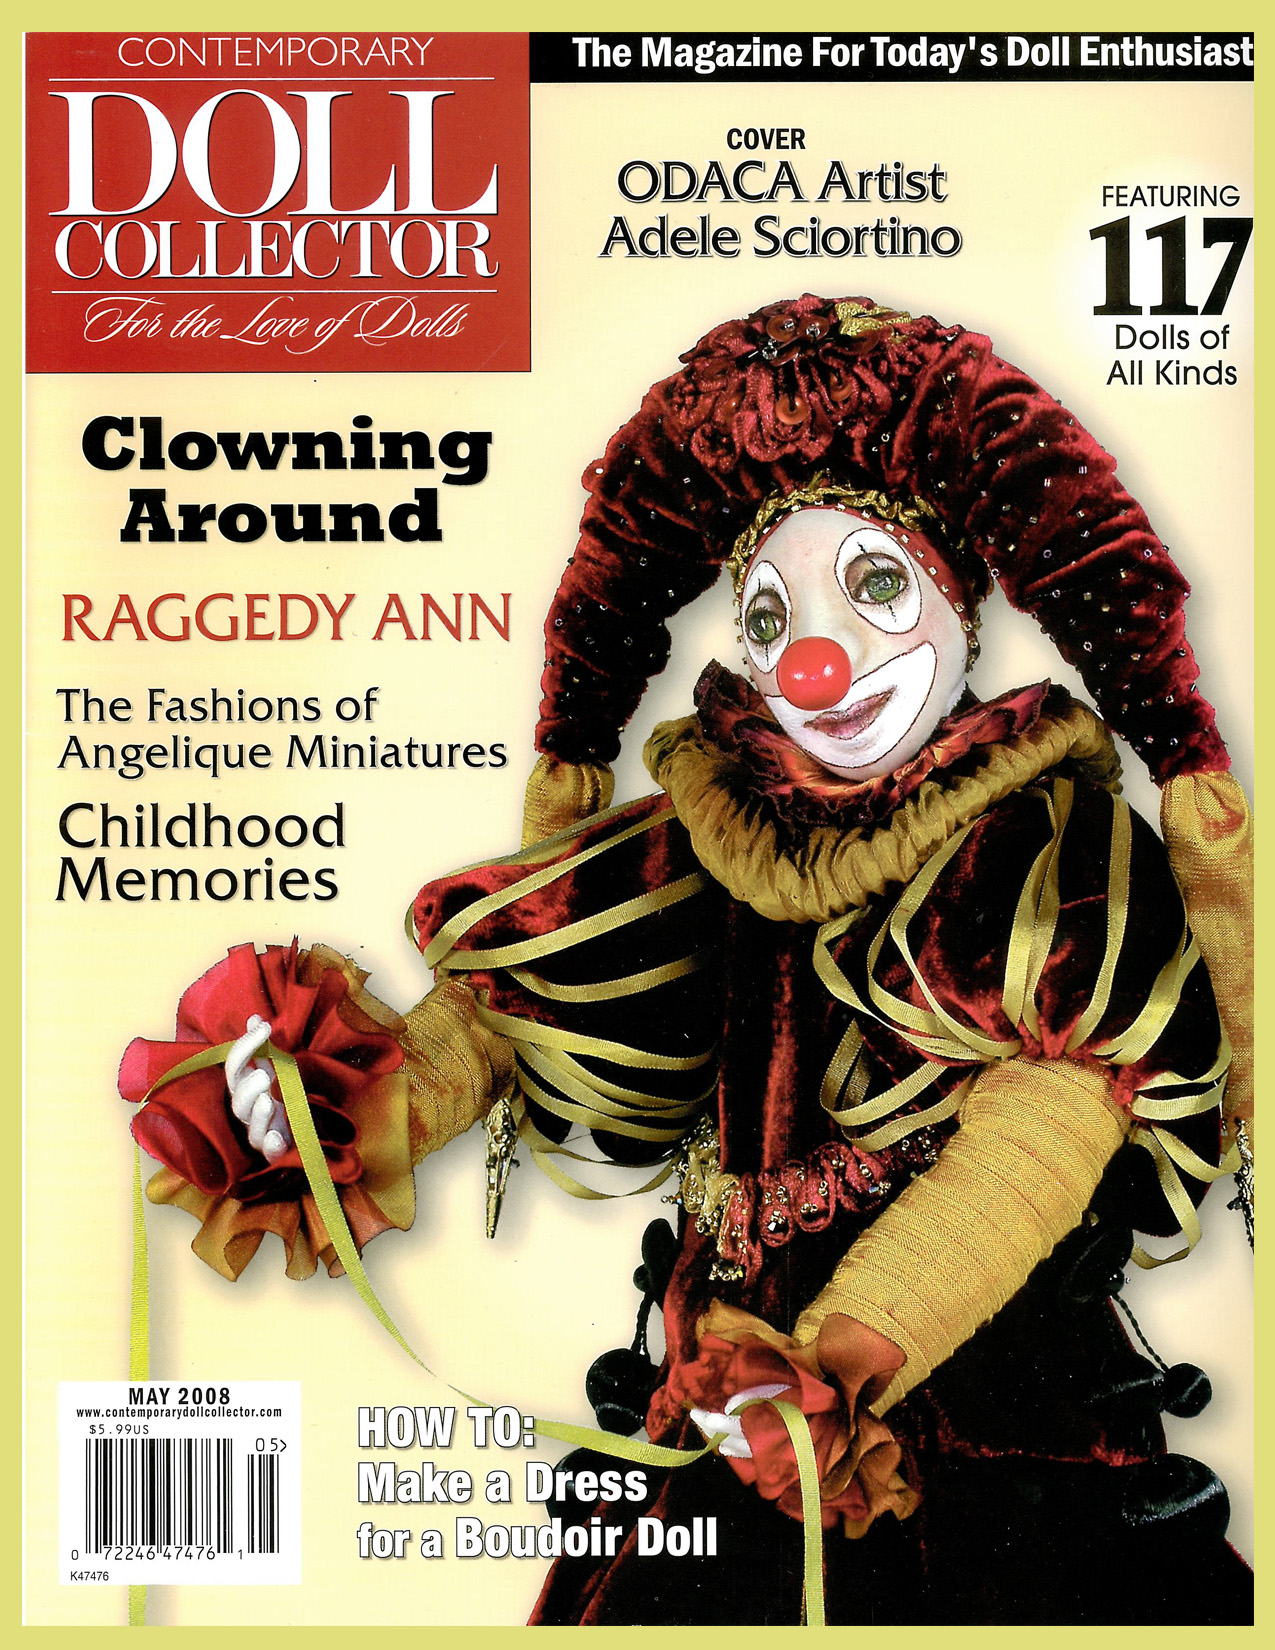 Contemporary Doll Collector ~ May 2008